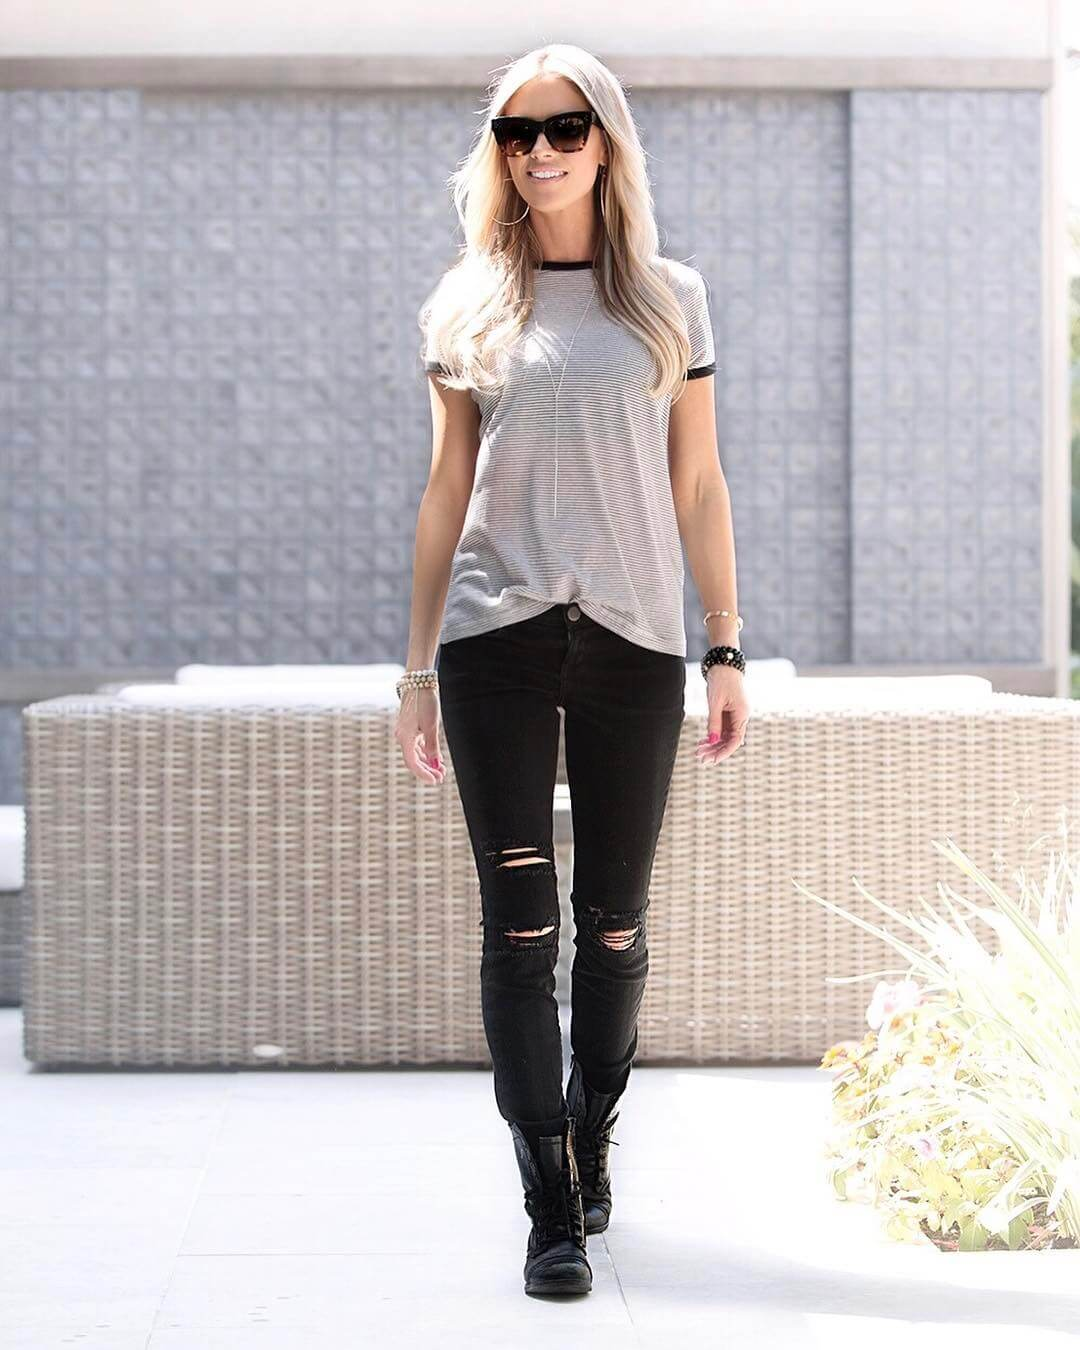 Christina Anstead hot tite jeans